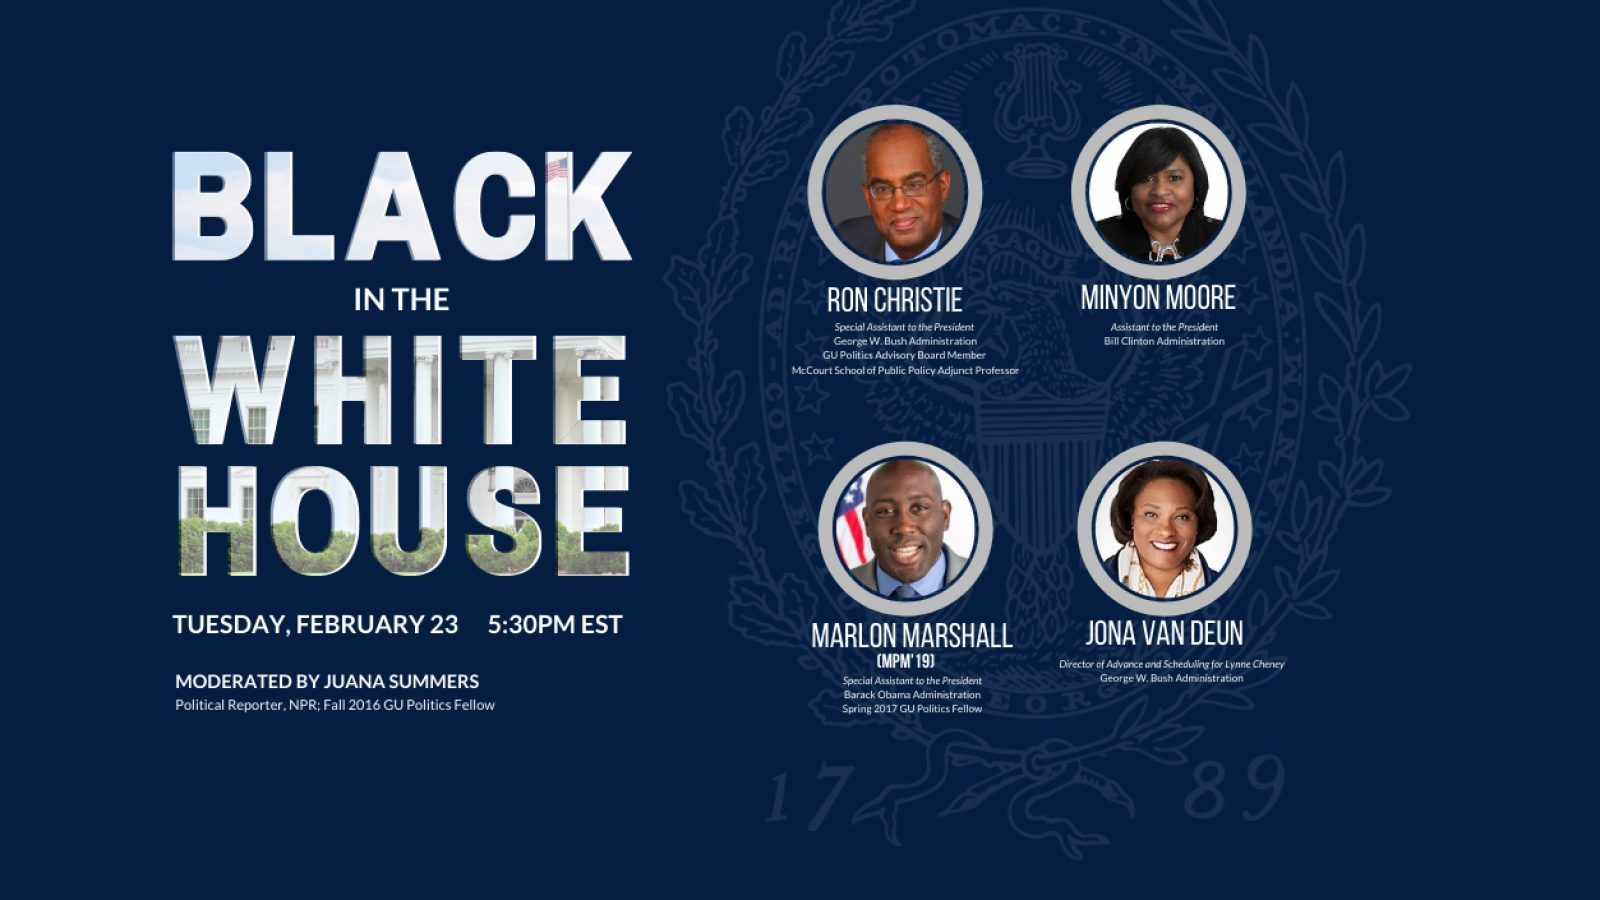 Black in the White House event on February 23, 2021